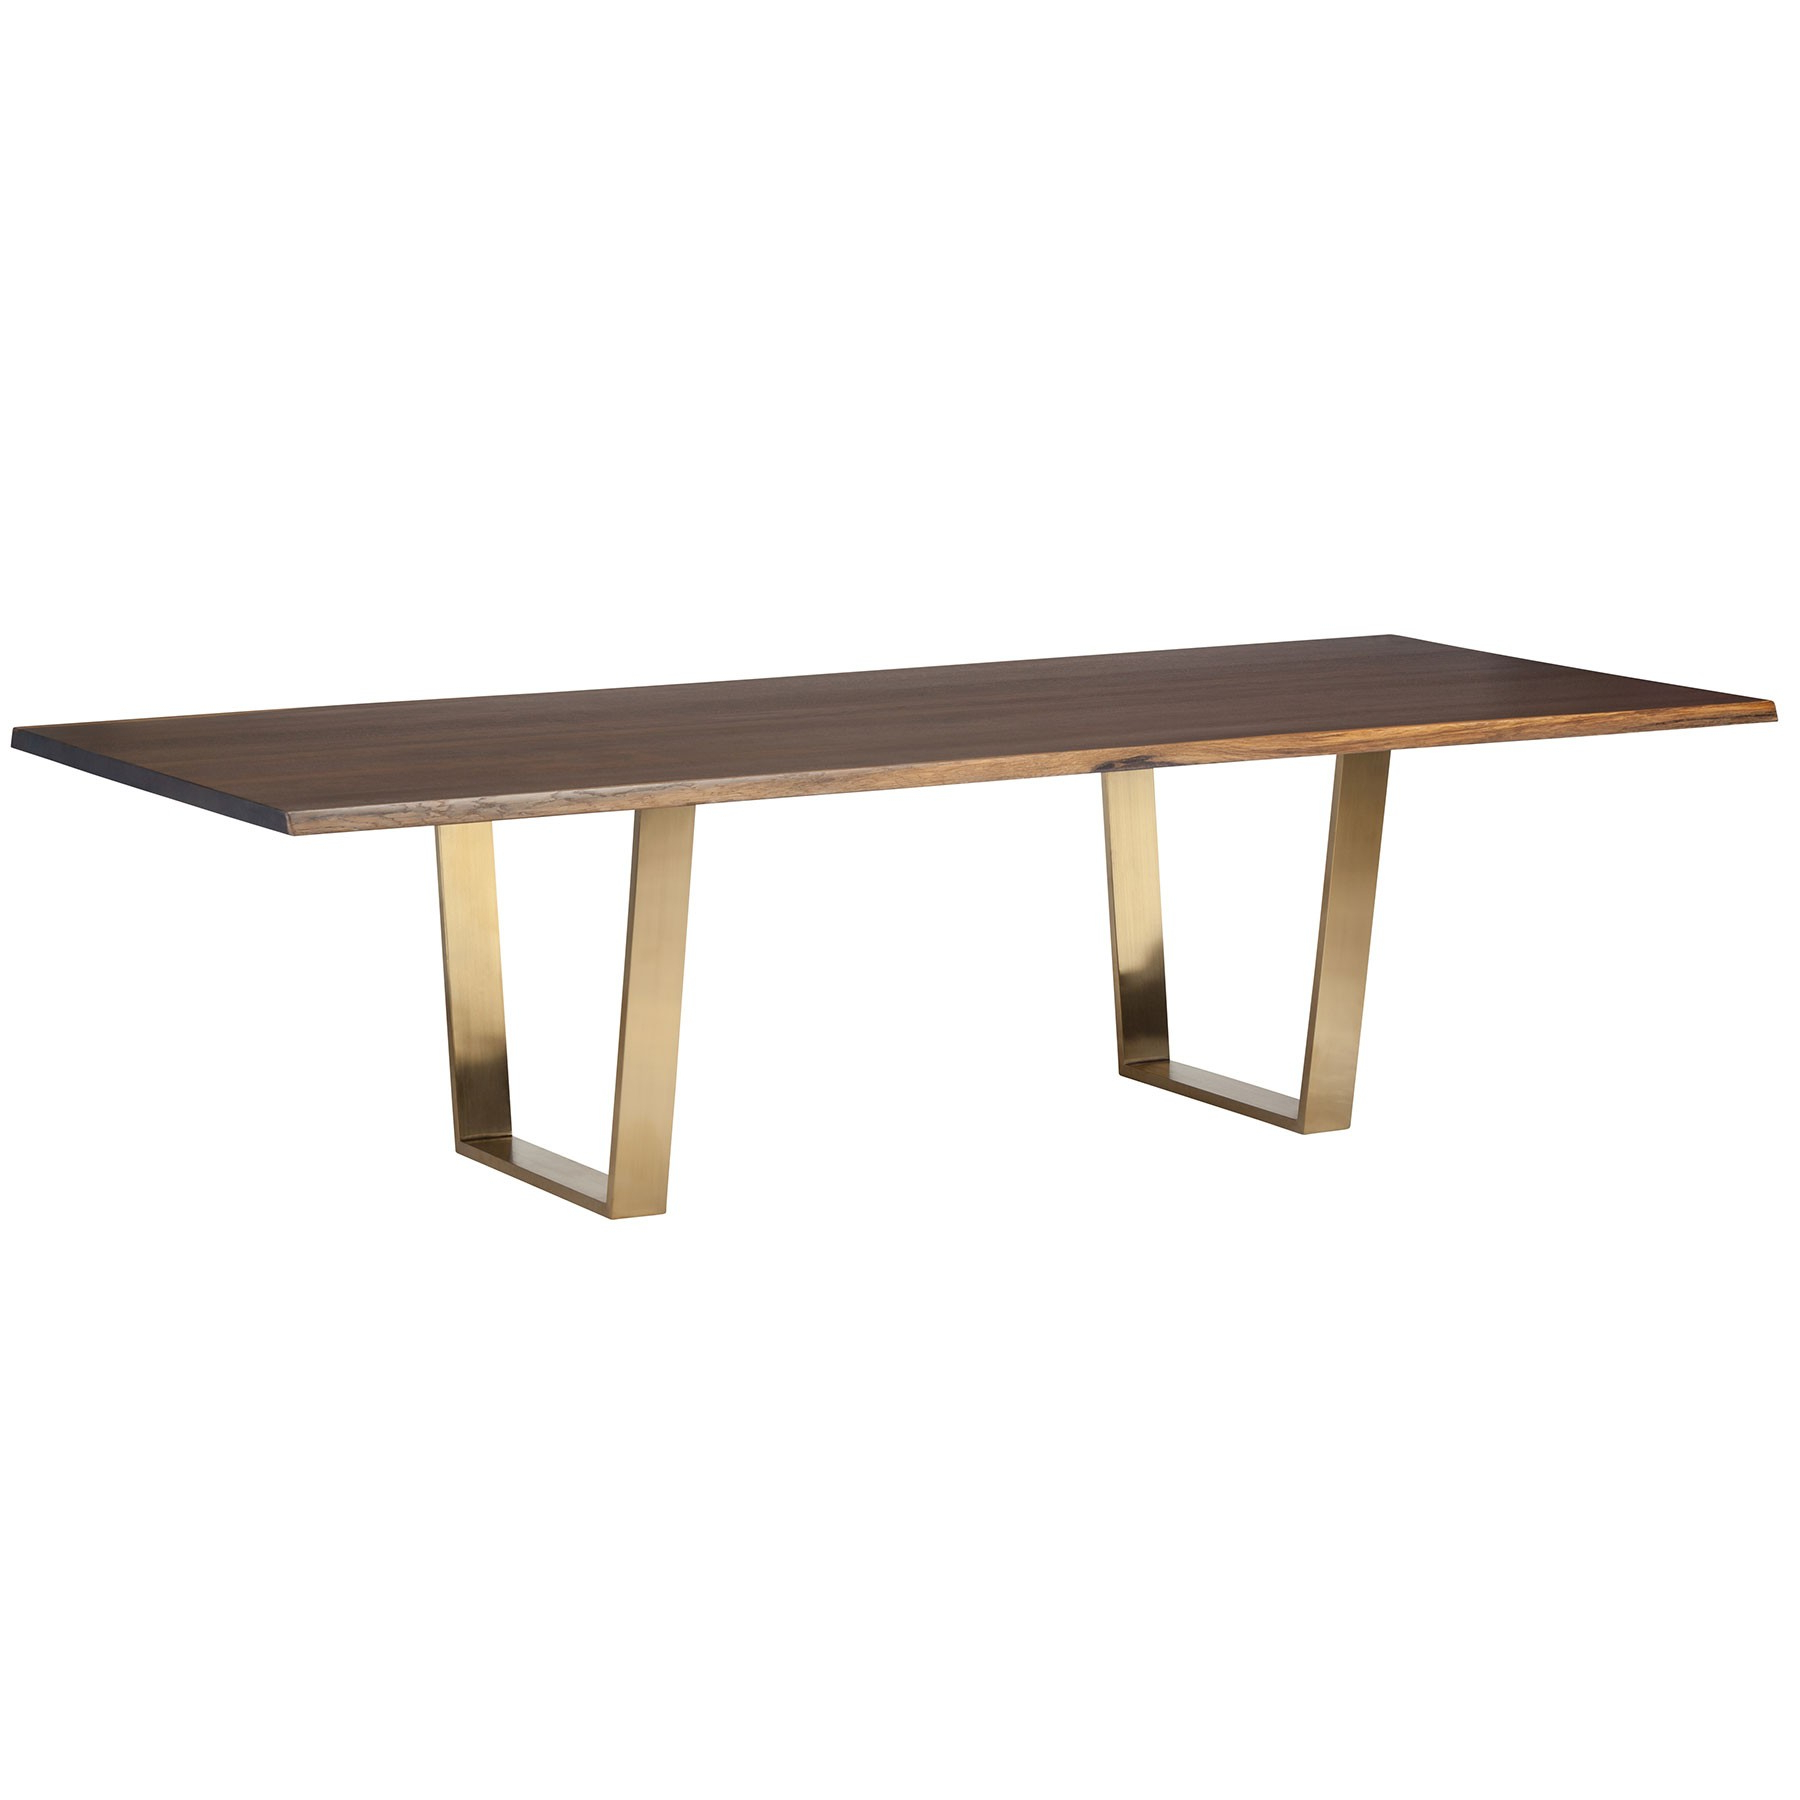 2019 Versailles Dining Table – Seared Oak / Gold For Dining Tables In Seared Oak (View 4 of 25)